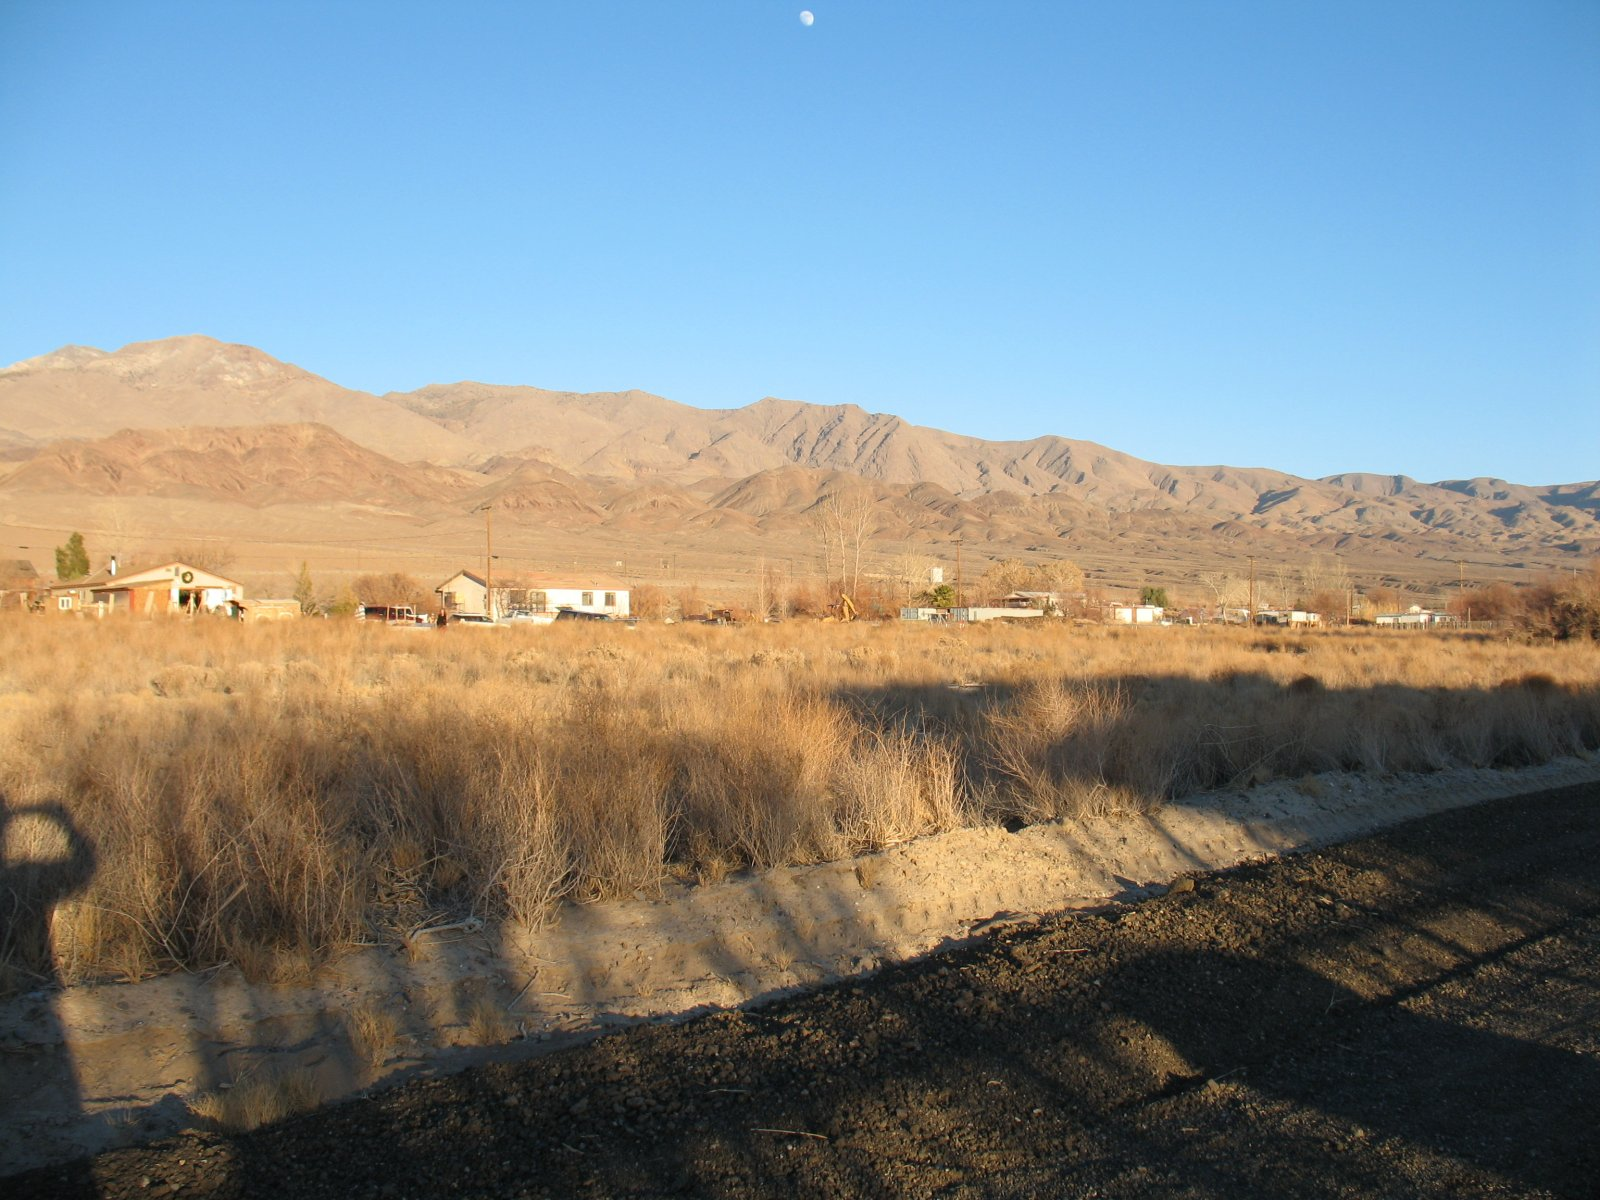 Click image for larger version  Name:Lone Pine Chritmas 2012 067.jpg Views:79 Size:310.0 KB ID:208283